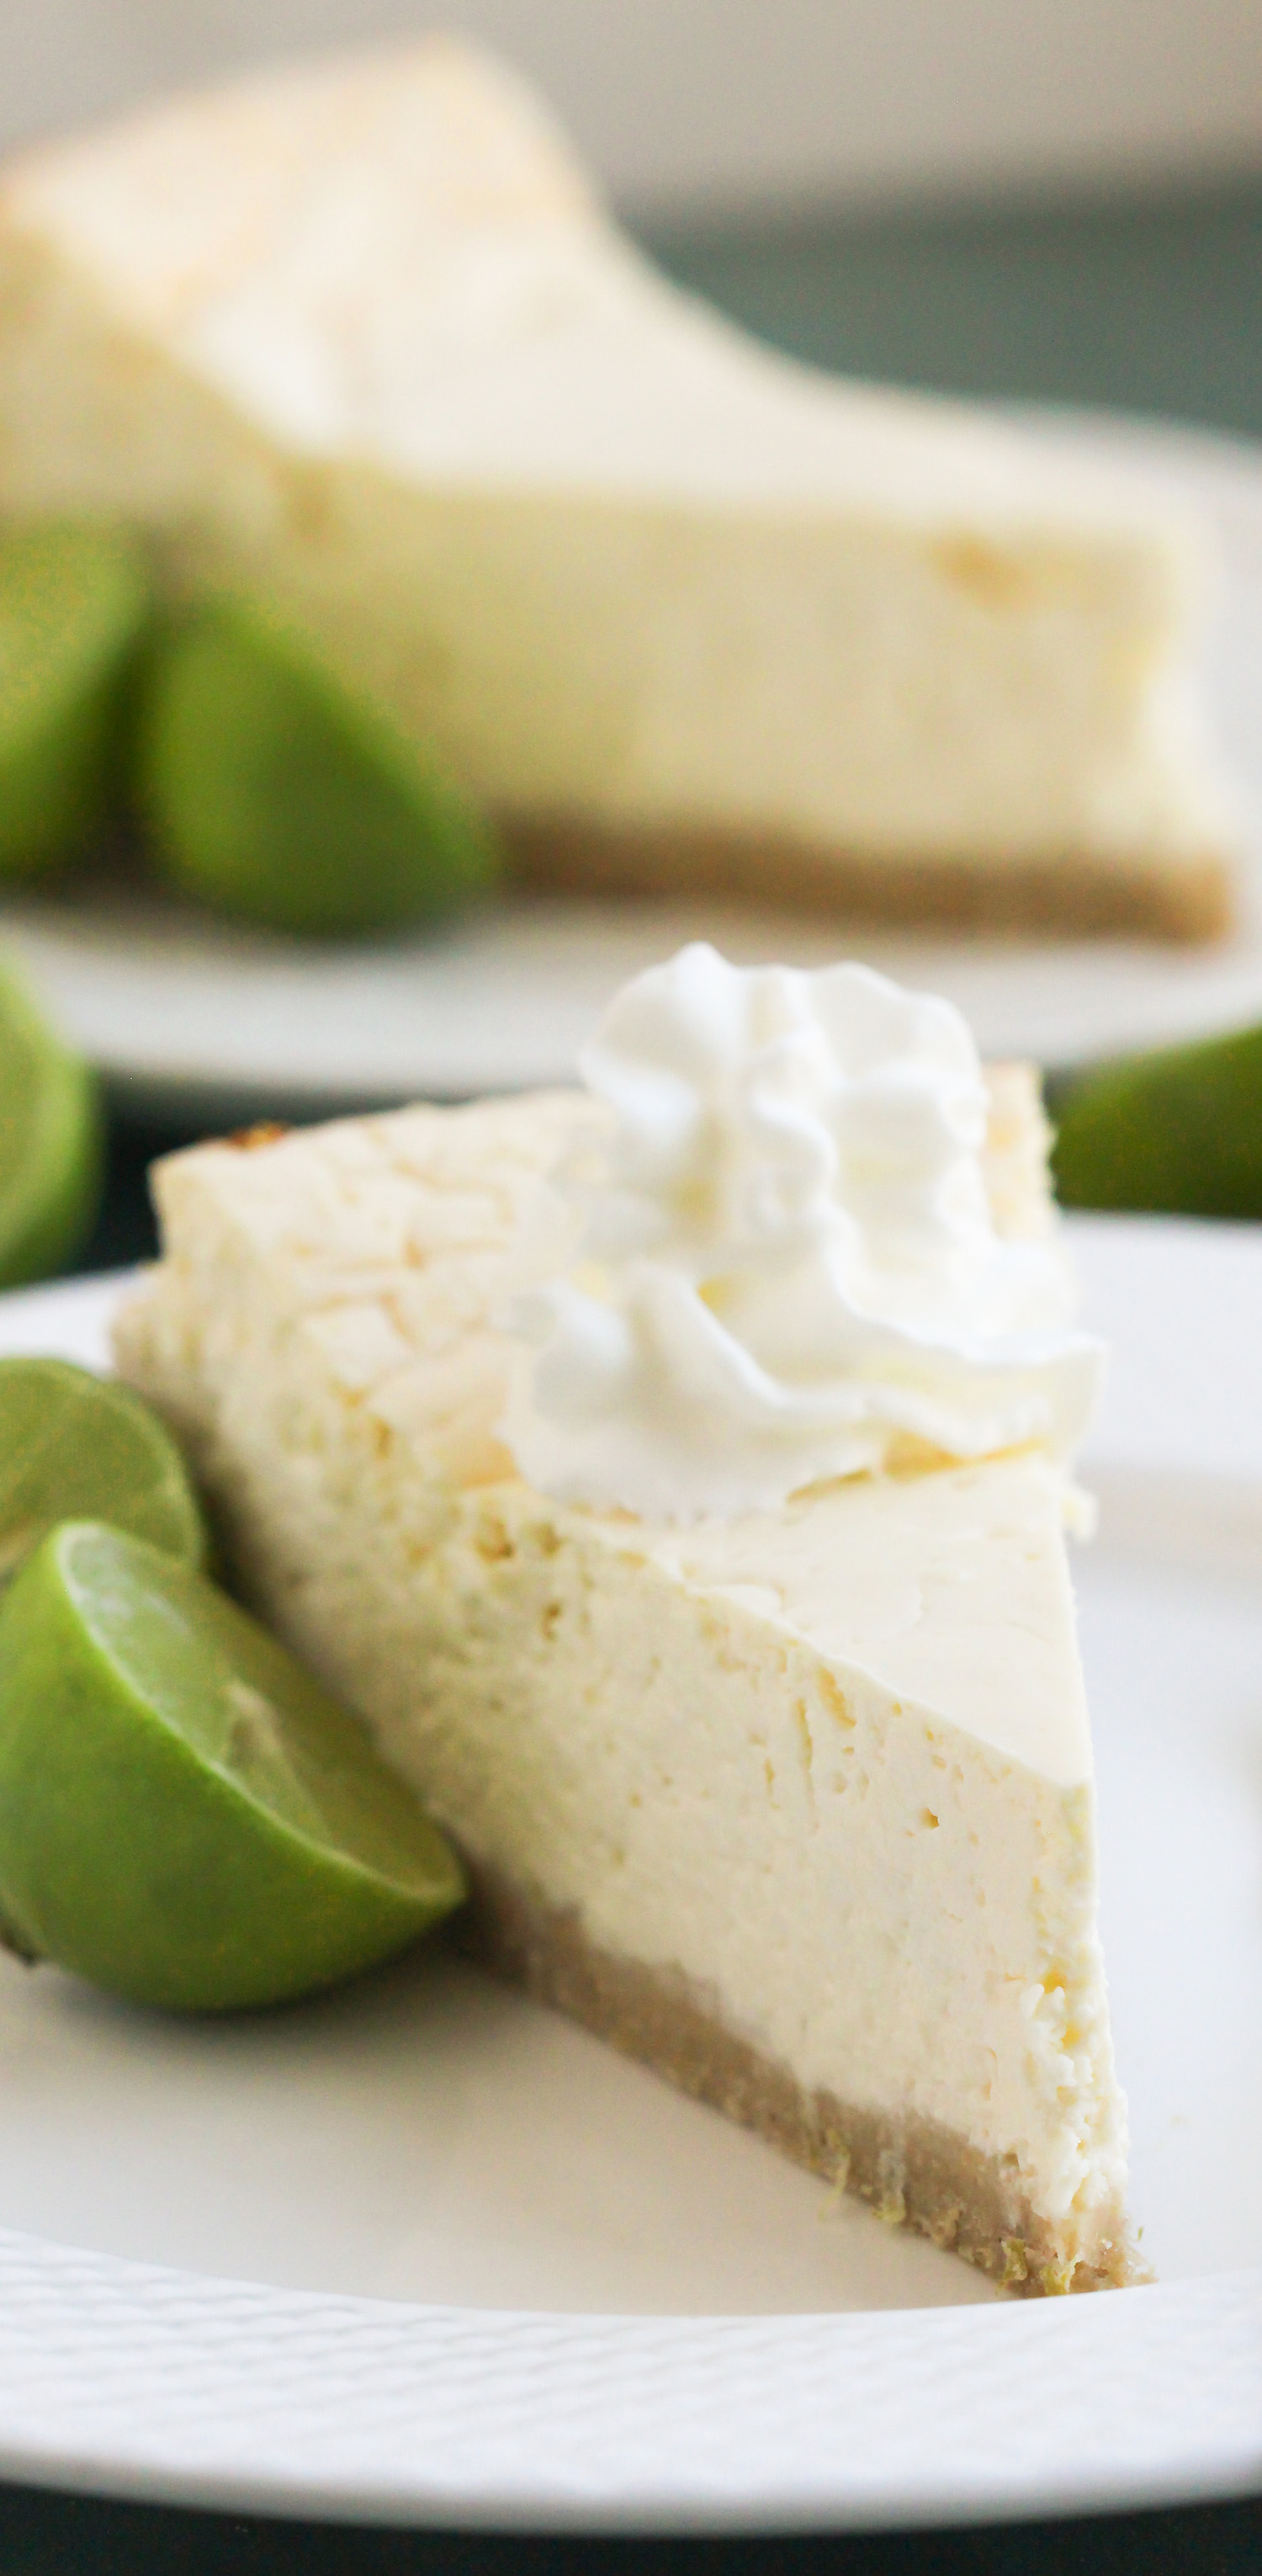 Healthy Key Lime Cheesecake Gluten Free Desserts With